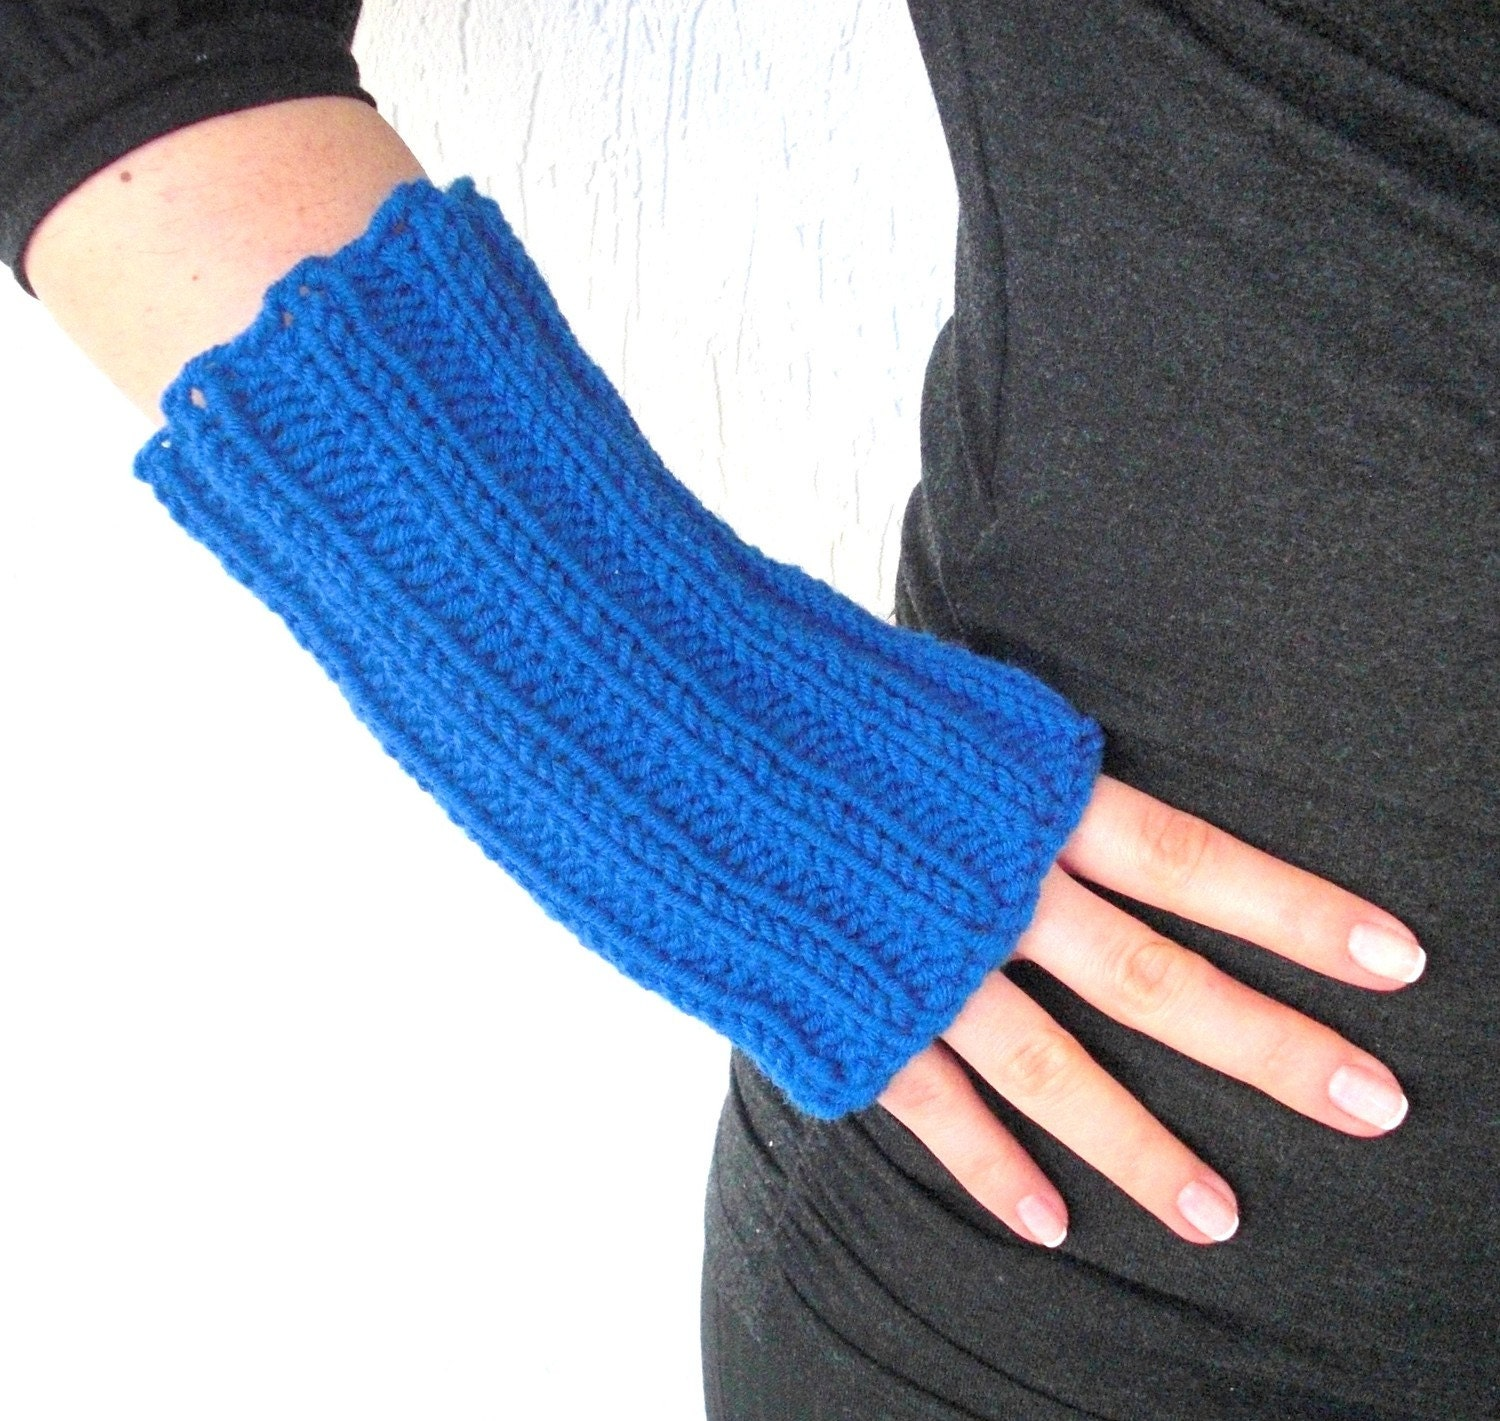 Glove Knit Pattern : Fingerless Glove Knitting Patterns Patterns Gallery